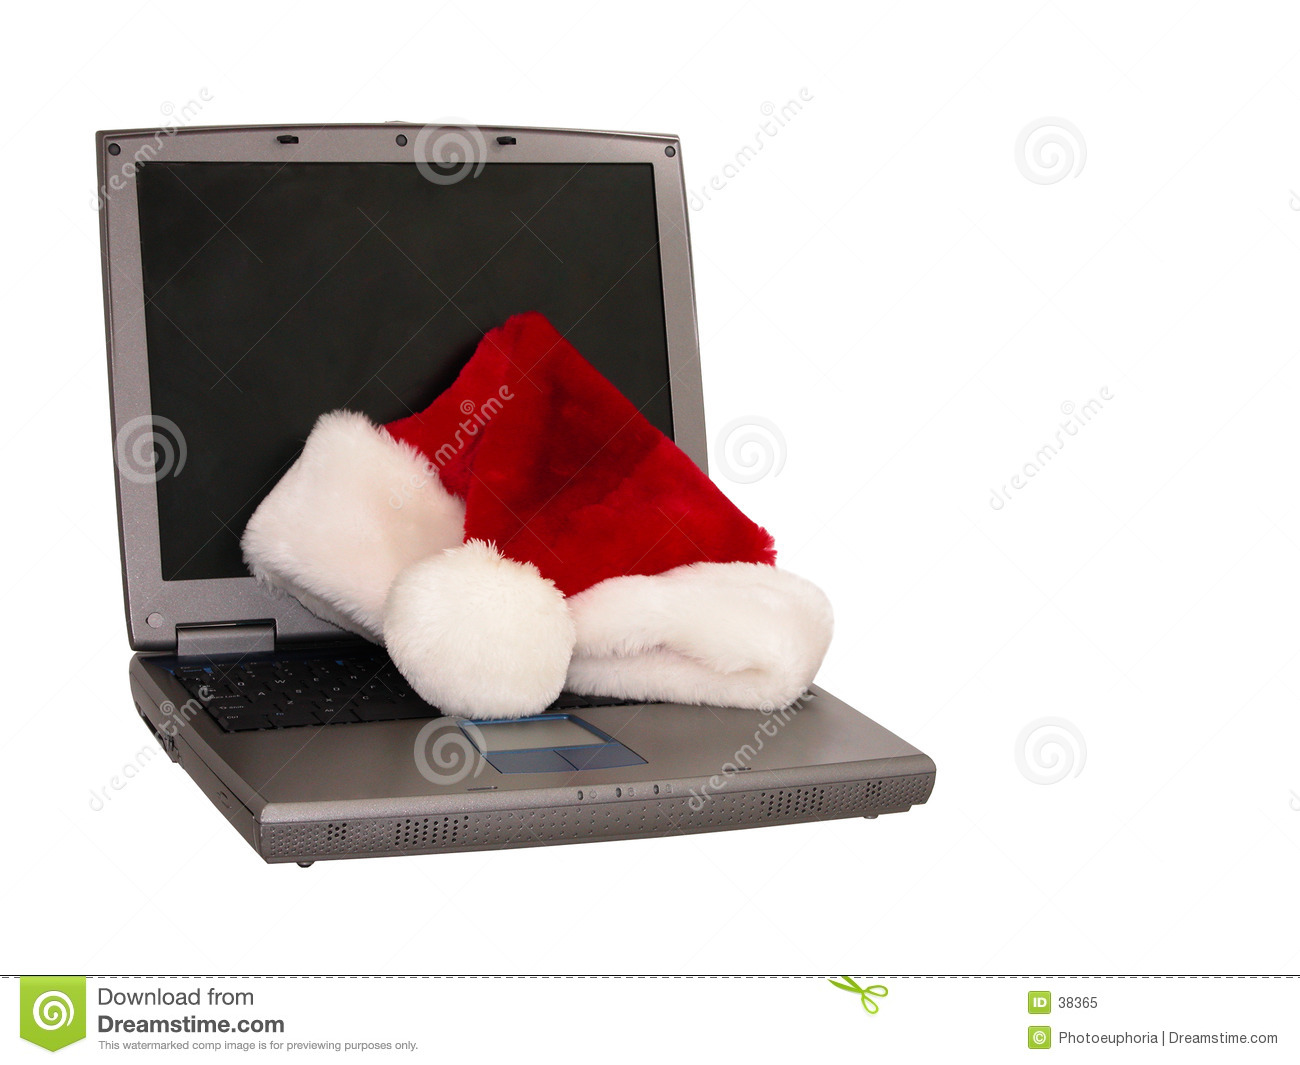 Santa Hat Sitting on a Laptop (3 of 3)